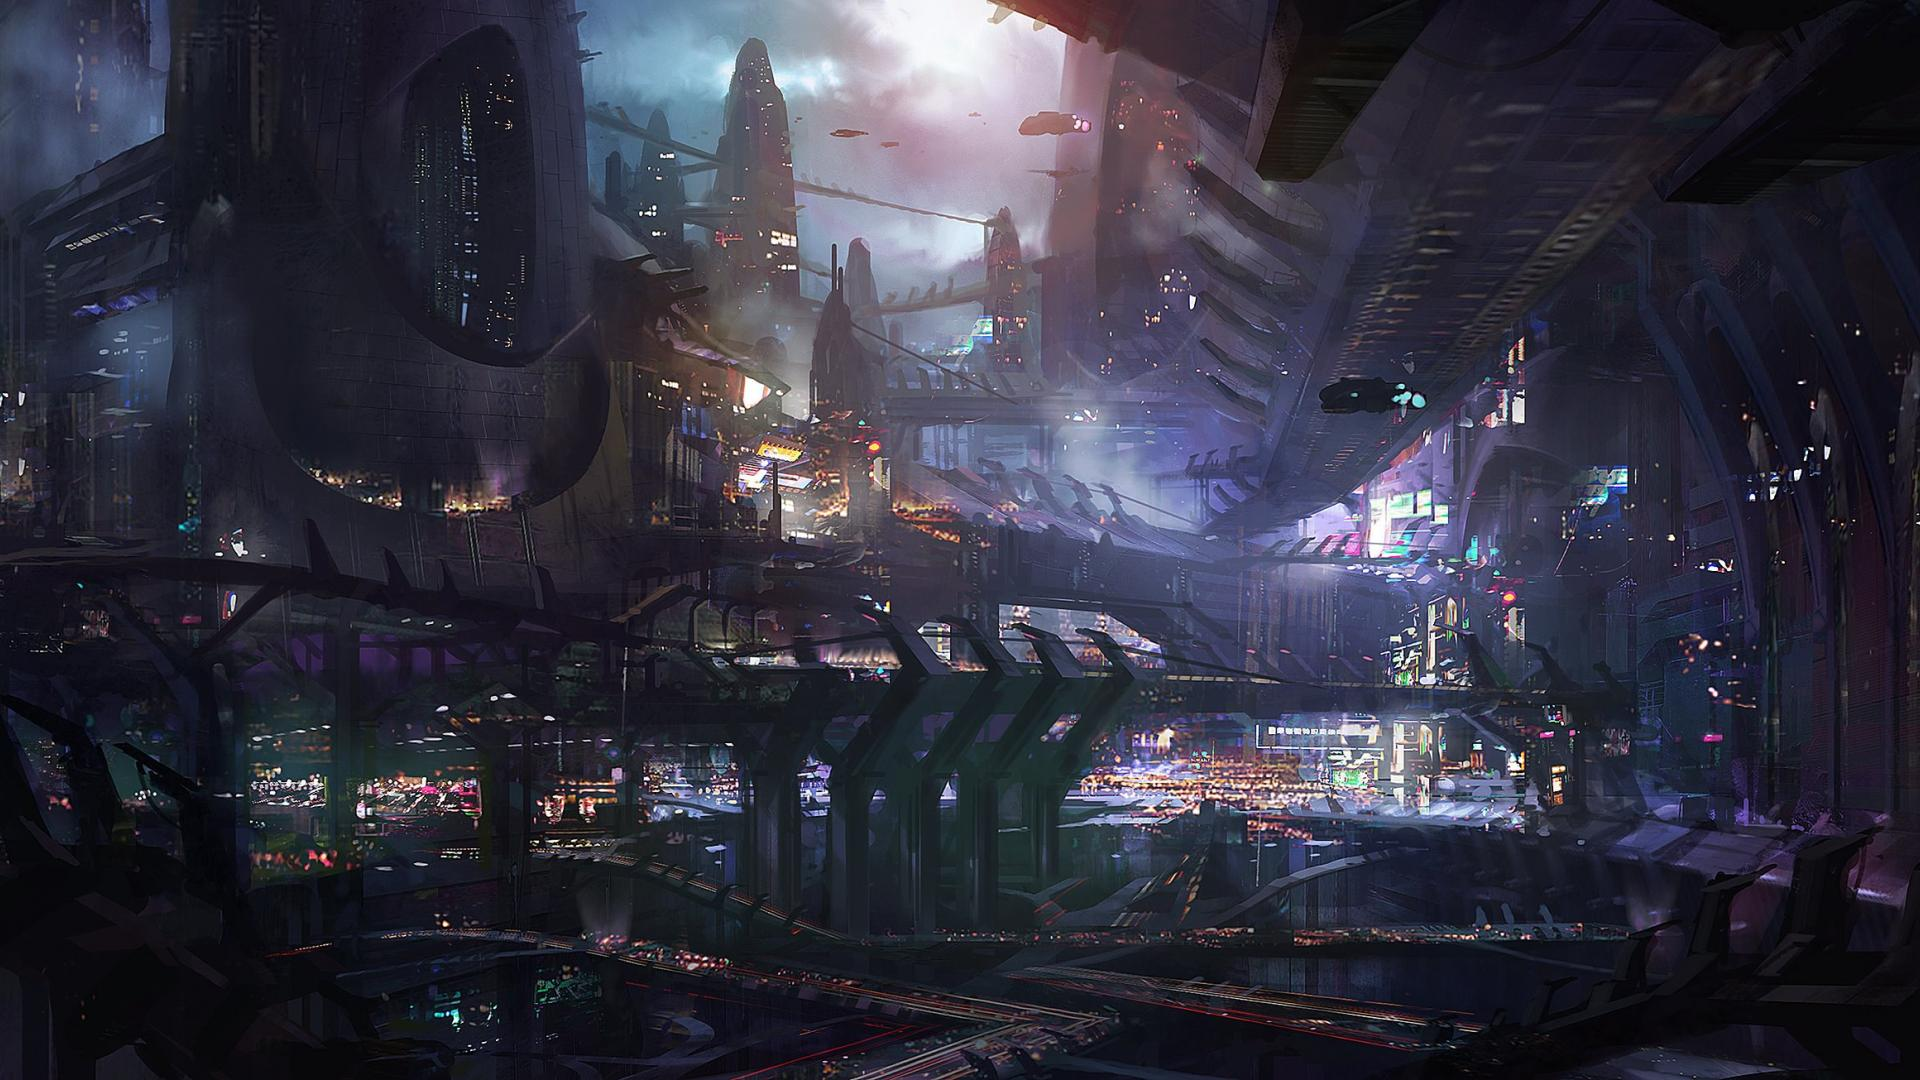 Futuristic City Wallpaper 7